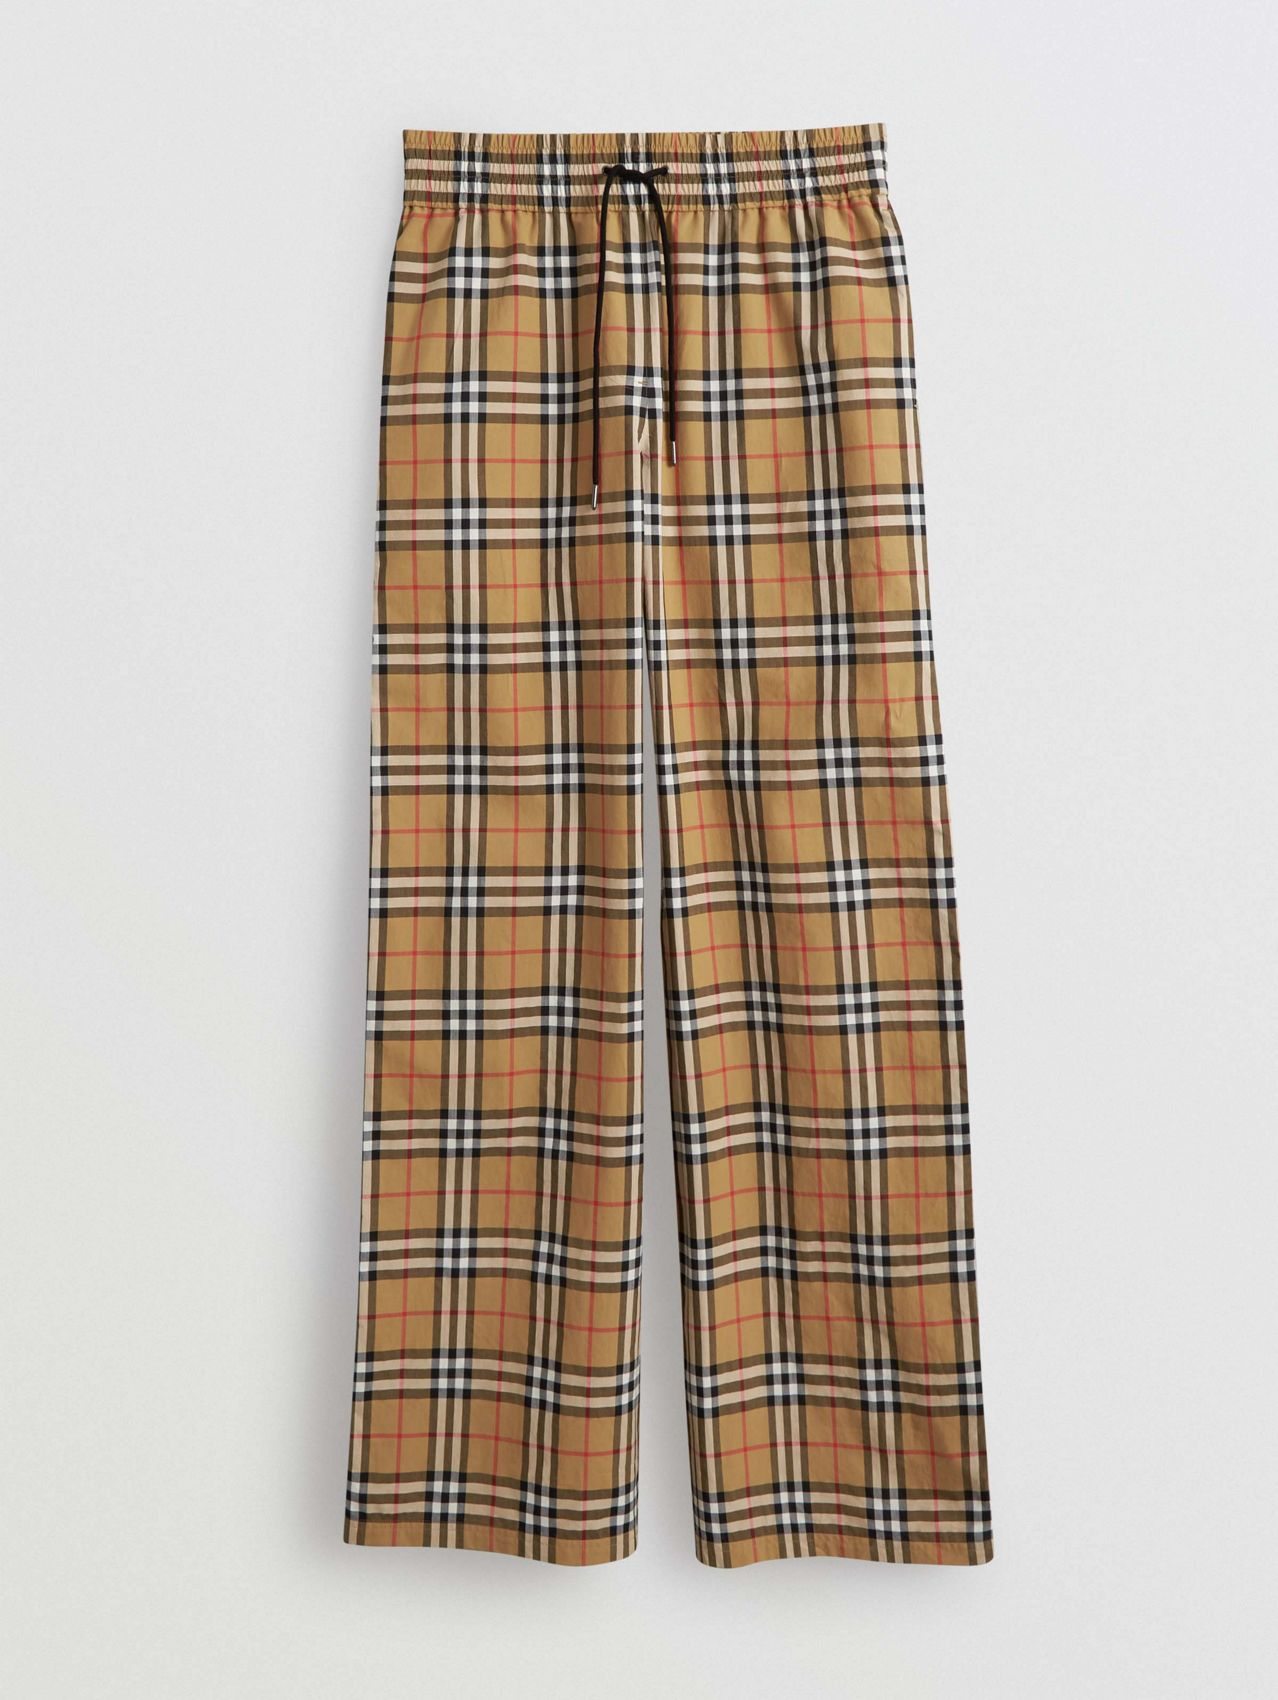 Pantalon en coton Vintage check avec satin in Jaune Antique